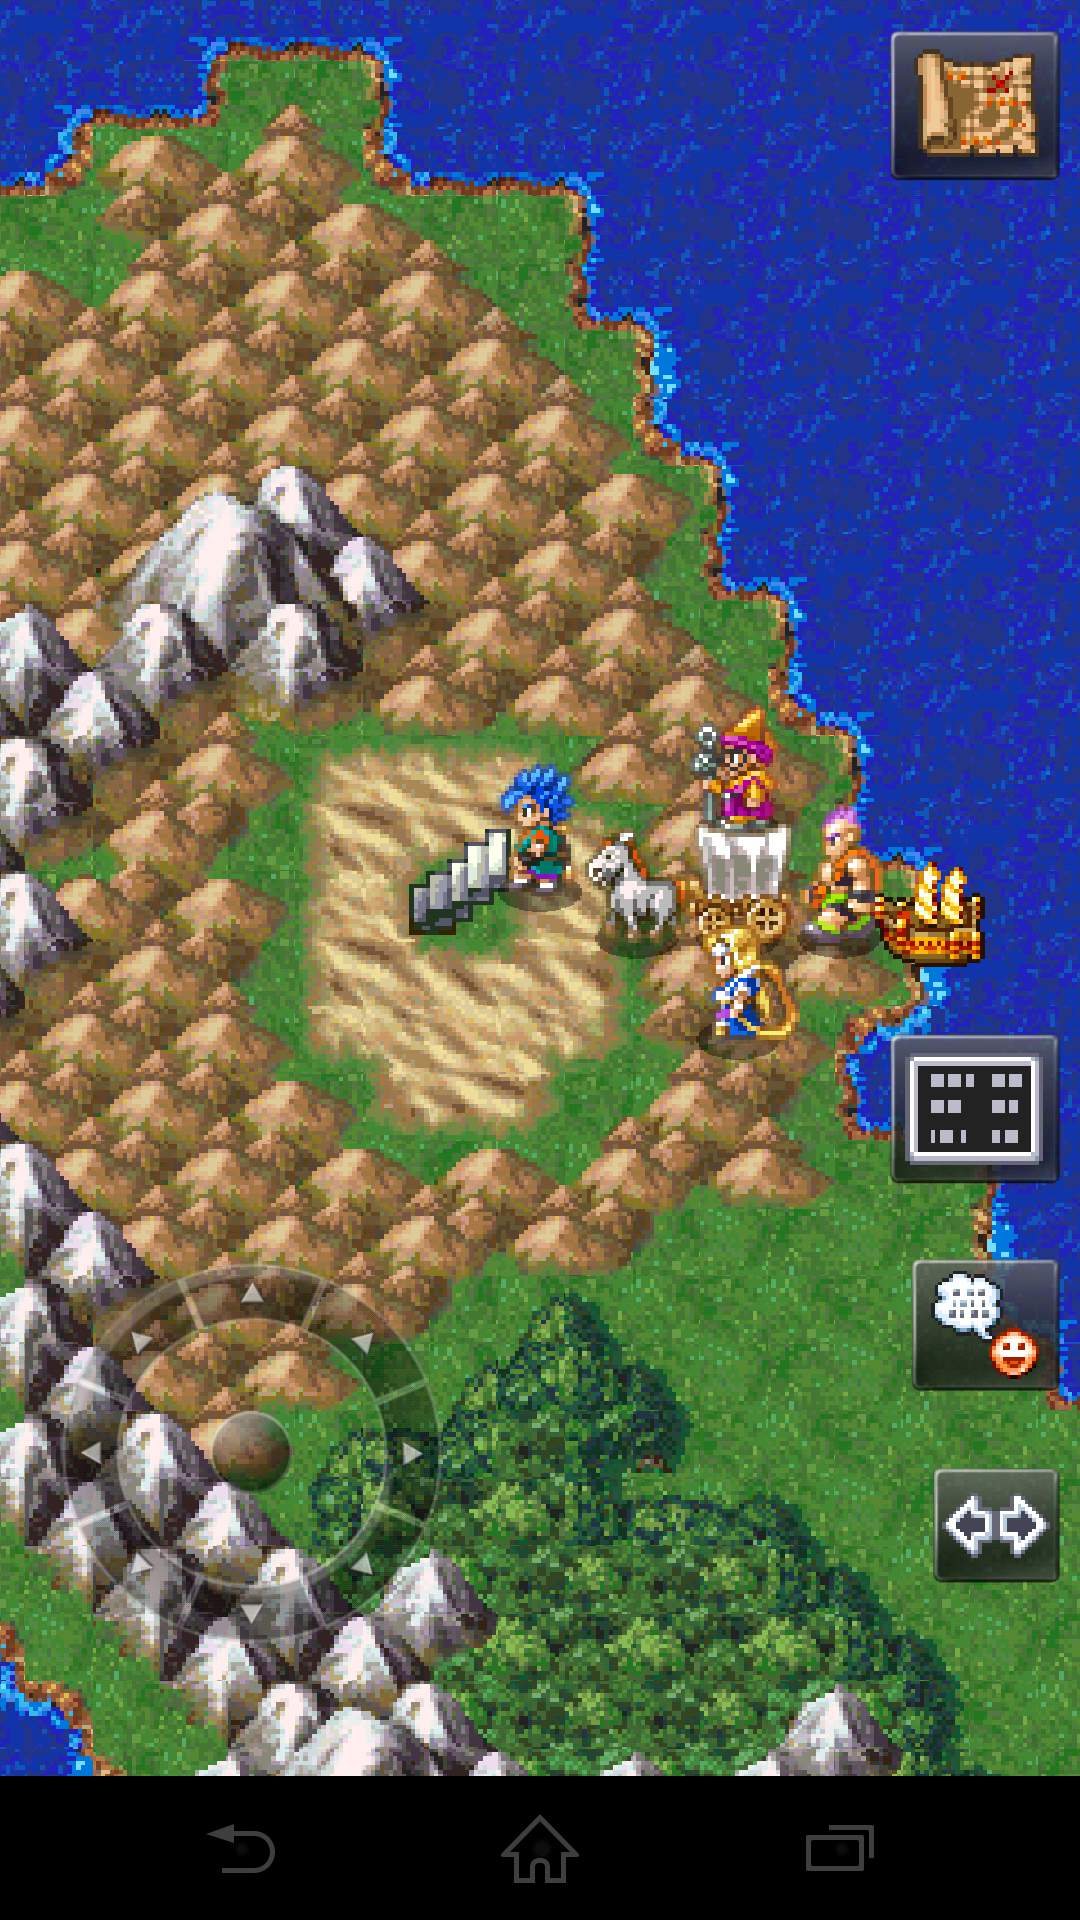 dq6-iphone-android-ios-12